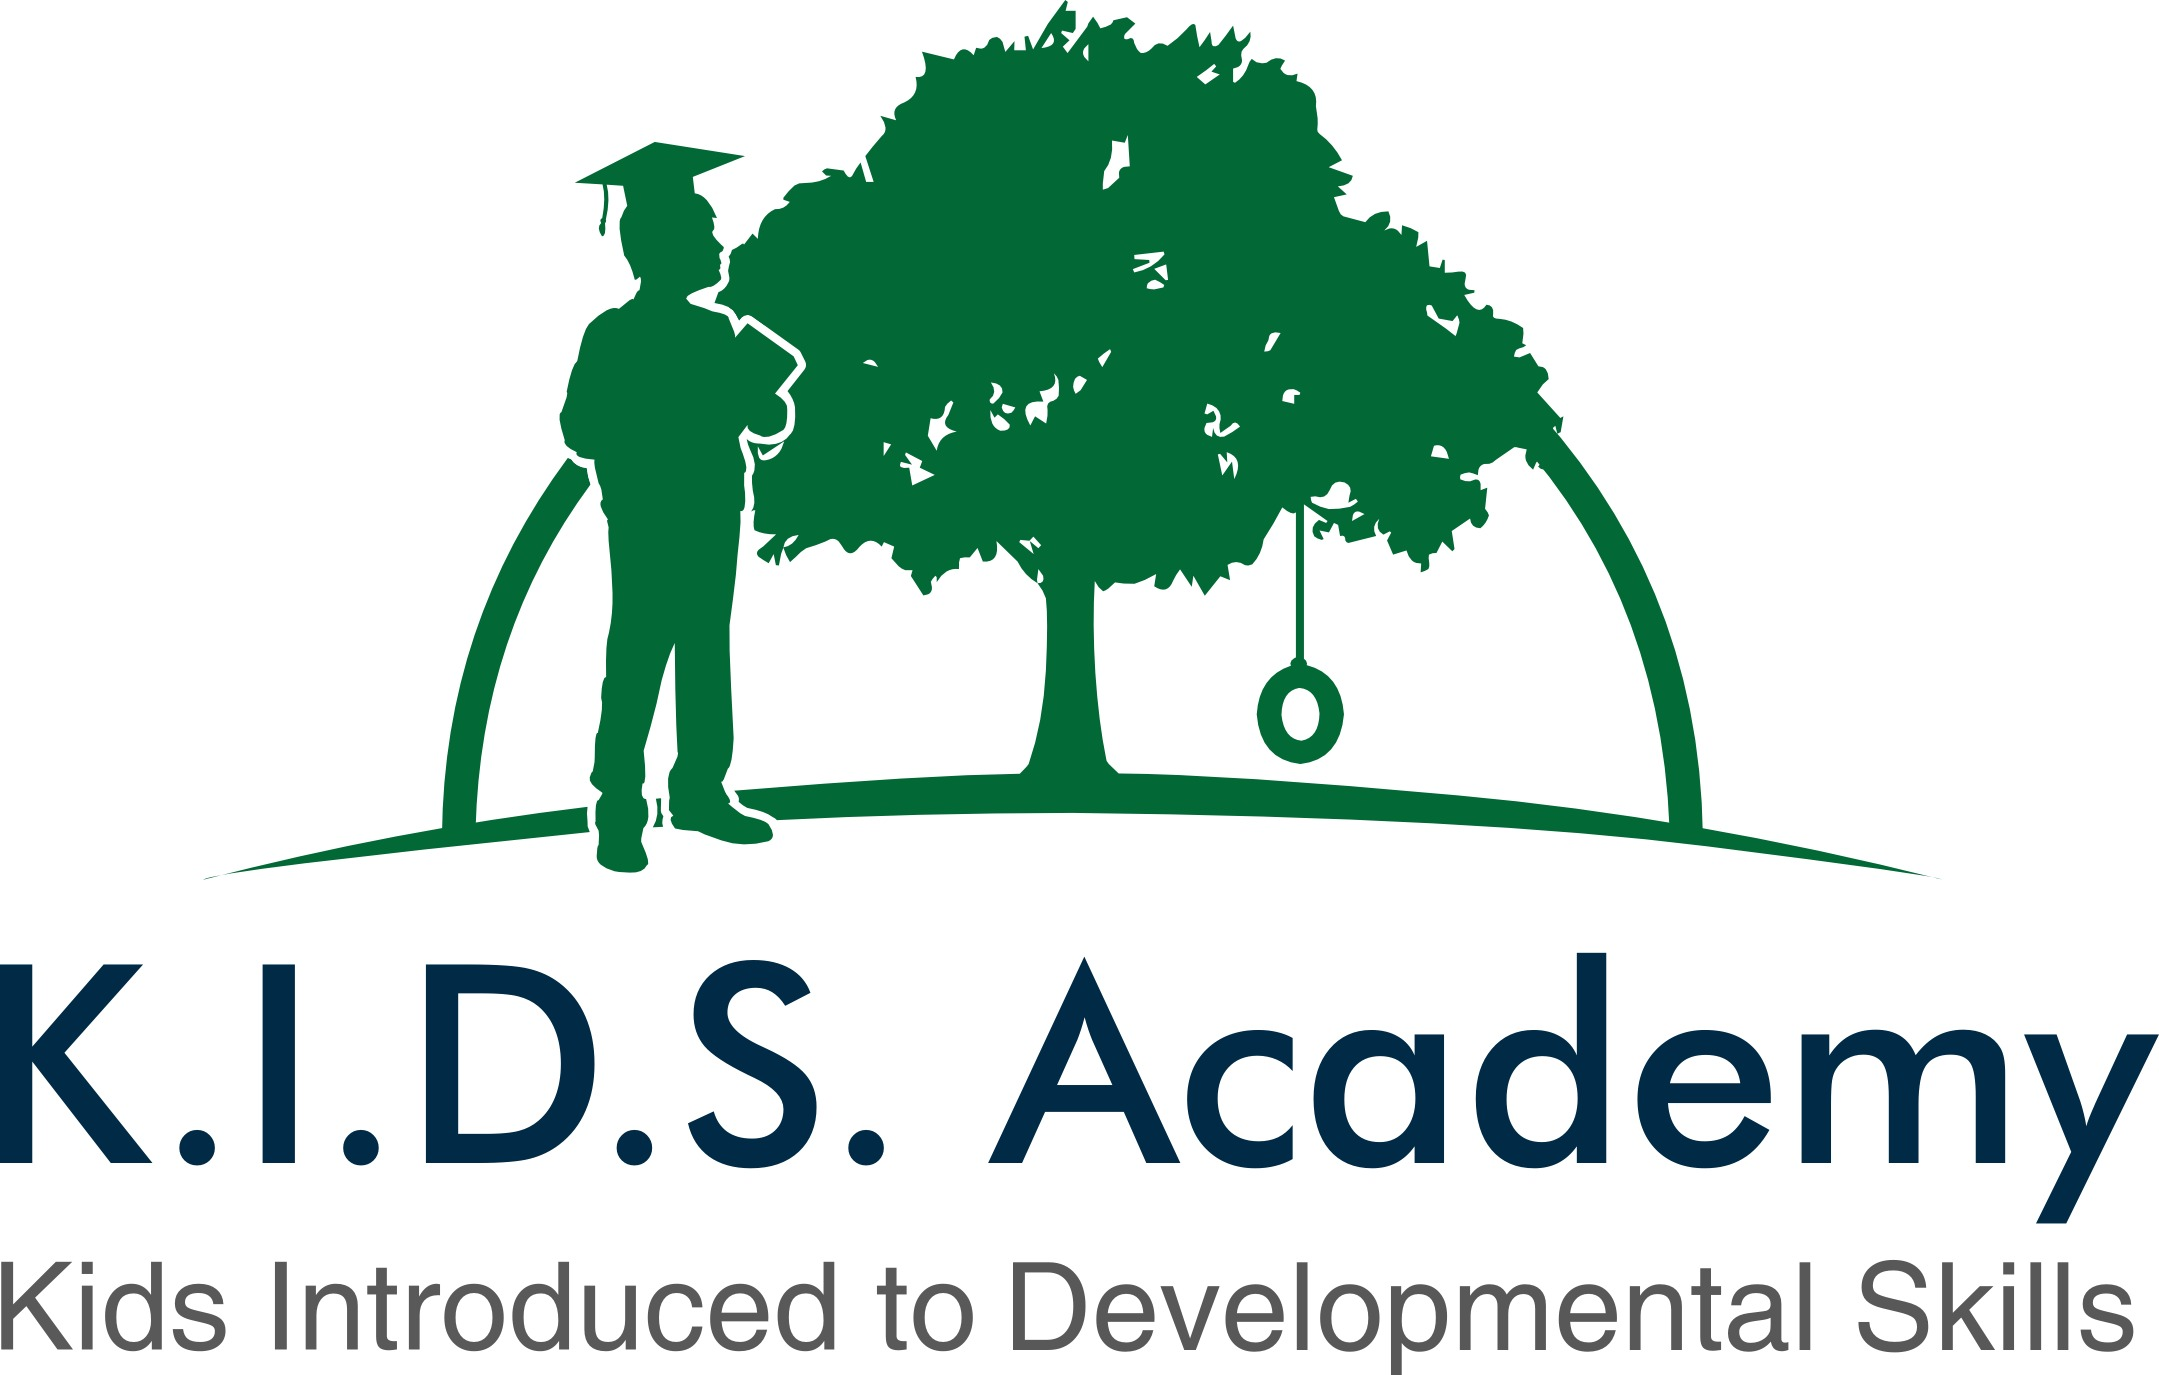 K.I.D.S. Academy Kids Introduced to Developmental Skills